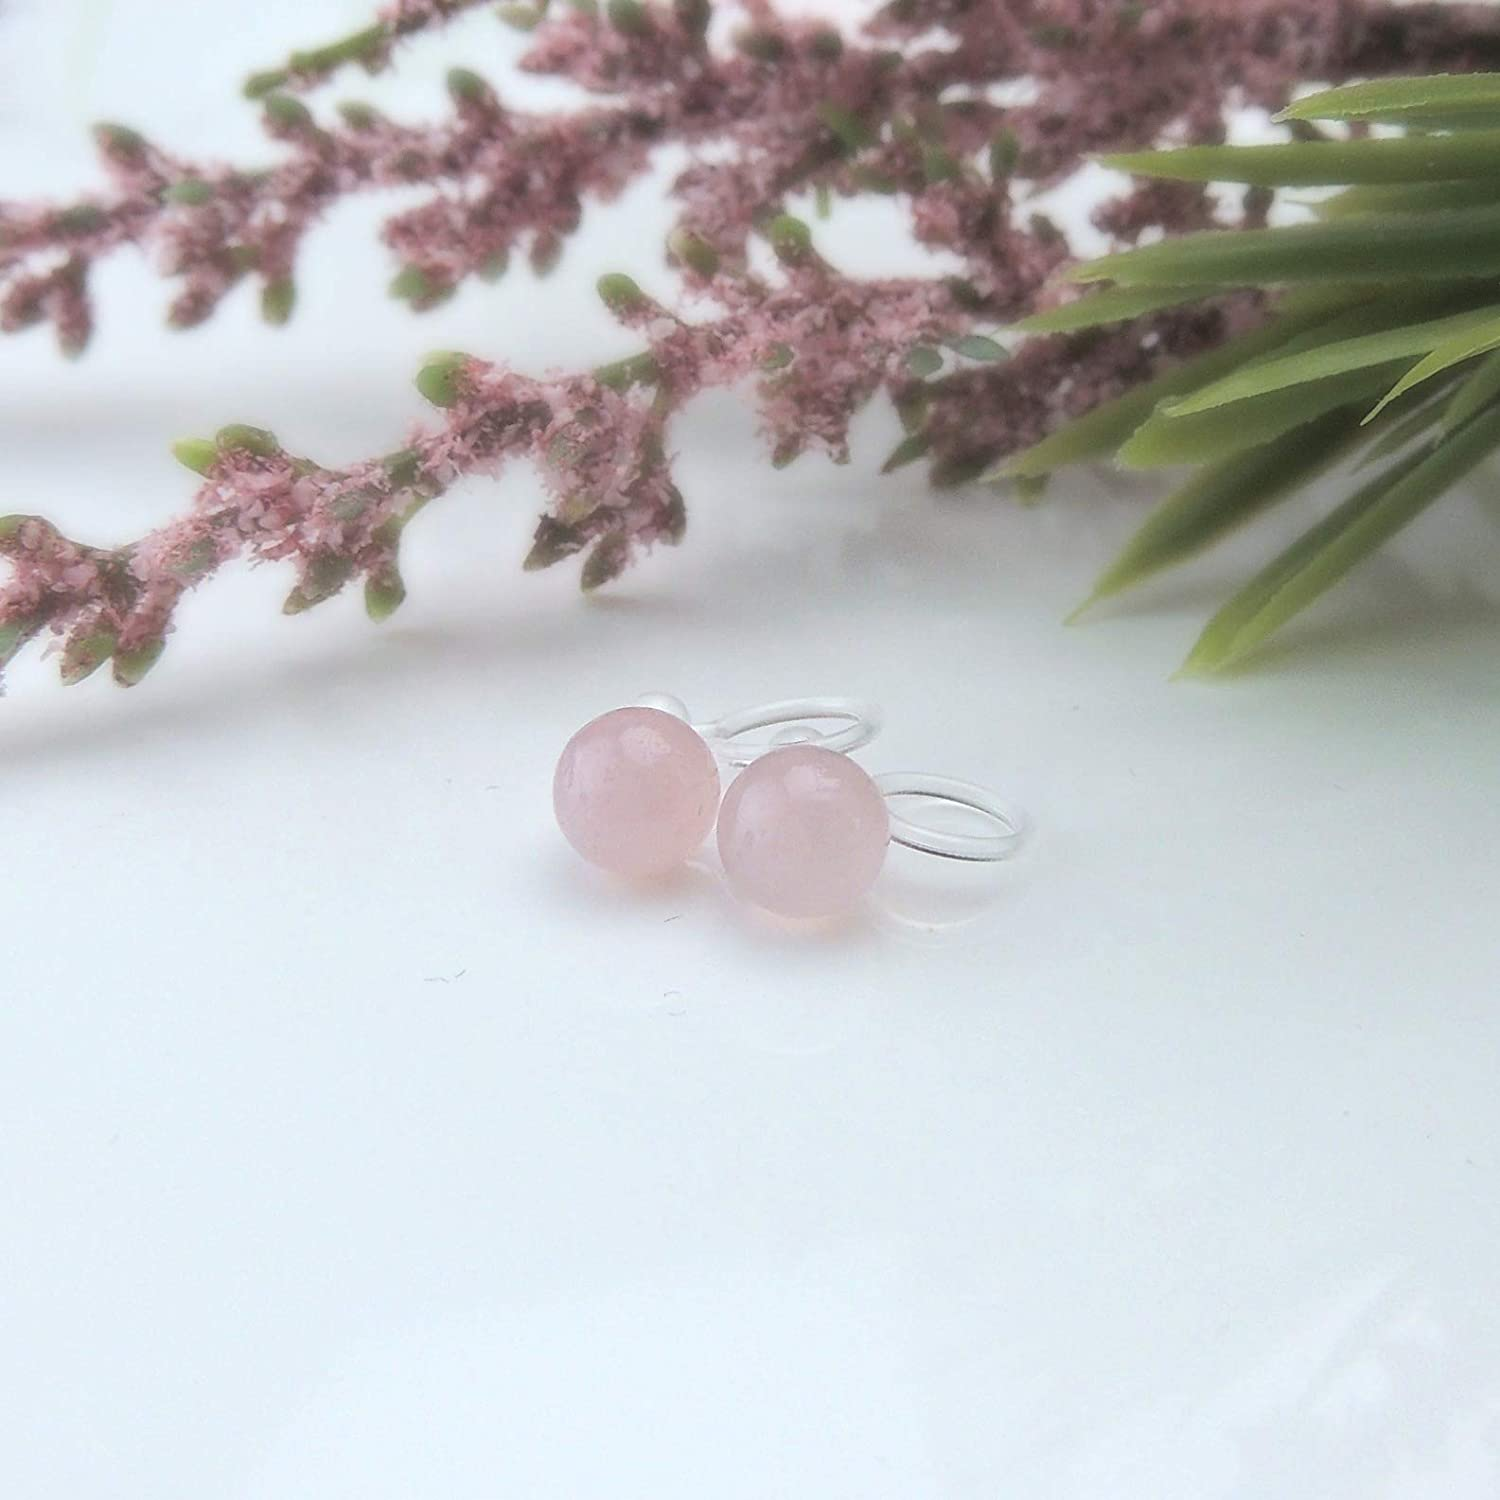 12mm Invisible Clip On Rose Quartz Stone Cabochon Earrings for Non-Pierced Ears